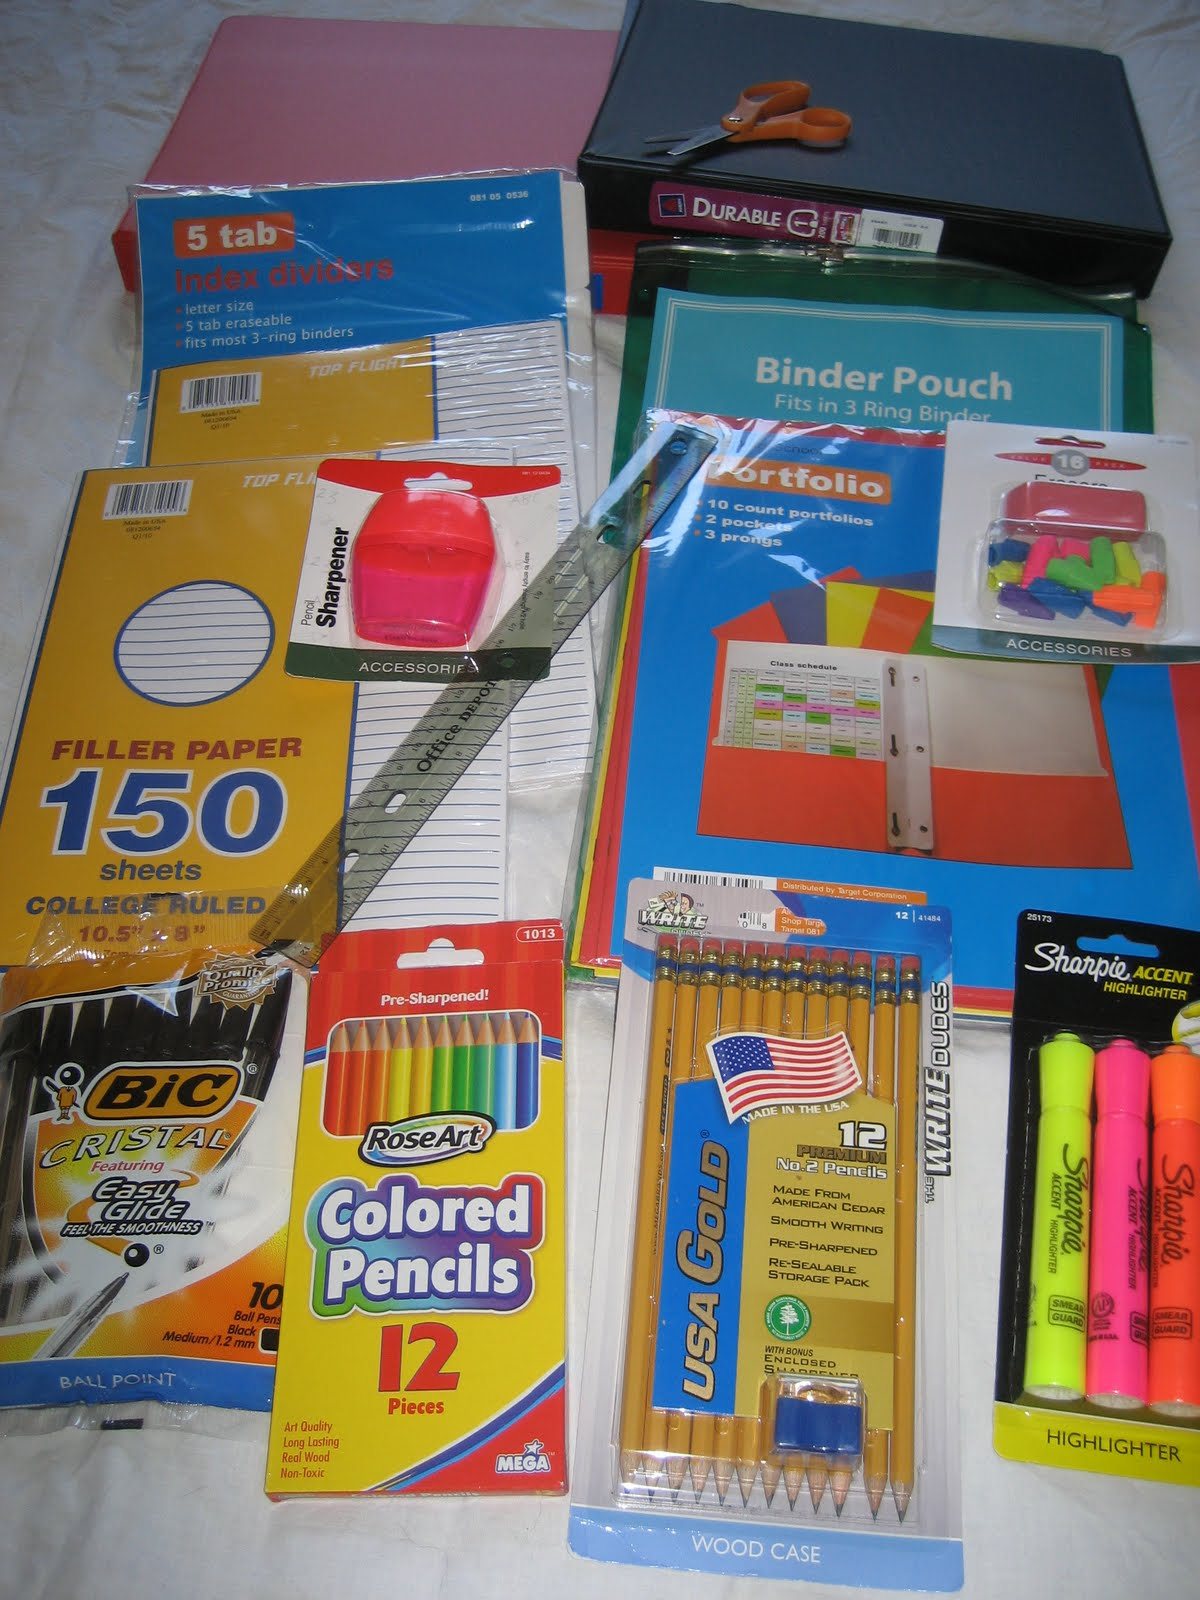 help us provide back to school supplies for 100 kids in need costco donated 100 backpacks we just need to fill them 15 will sponsor one child